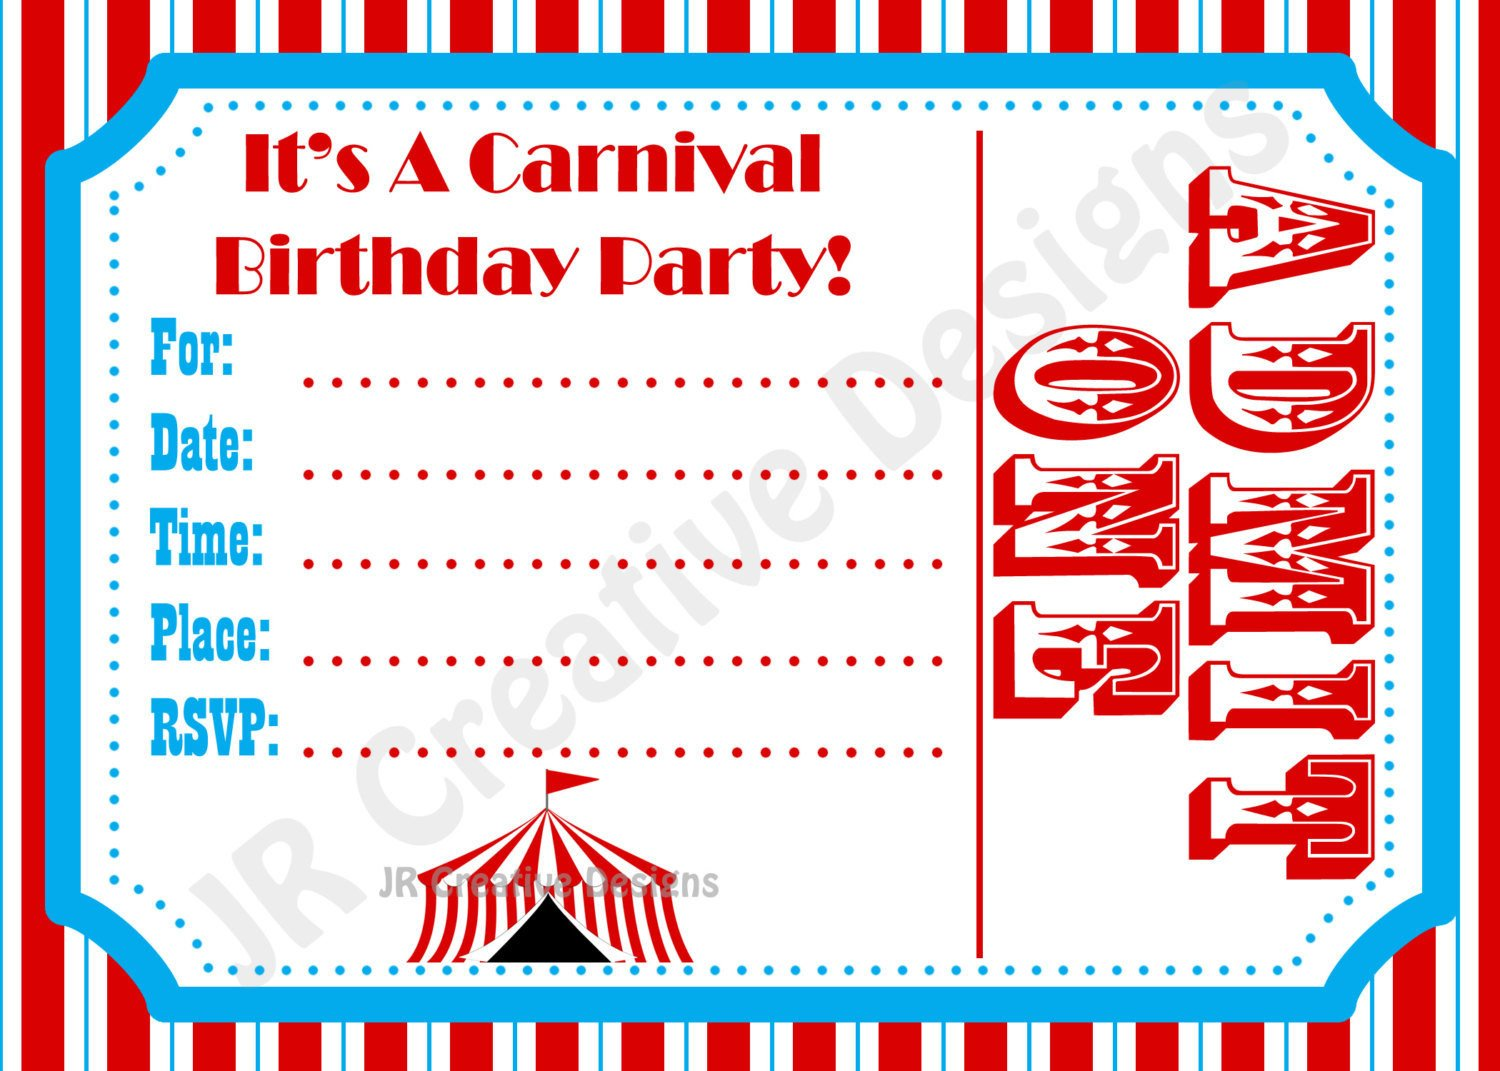 Carnival Ticket Invitation Template Free Carnival Invite Circus Invite Circus by Jrcreativedesigns